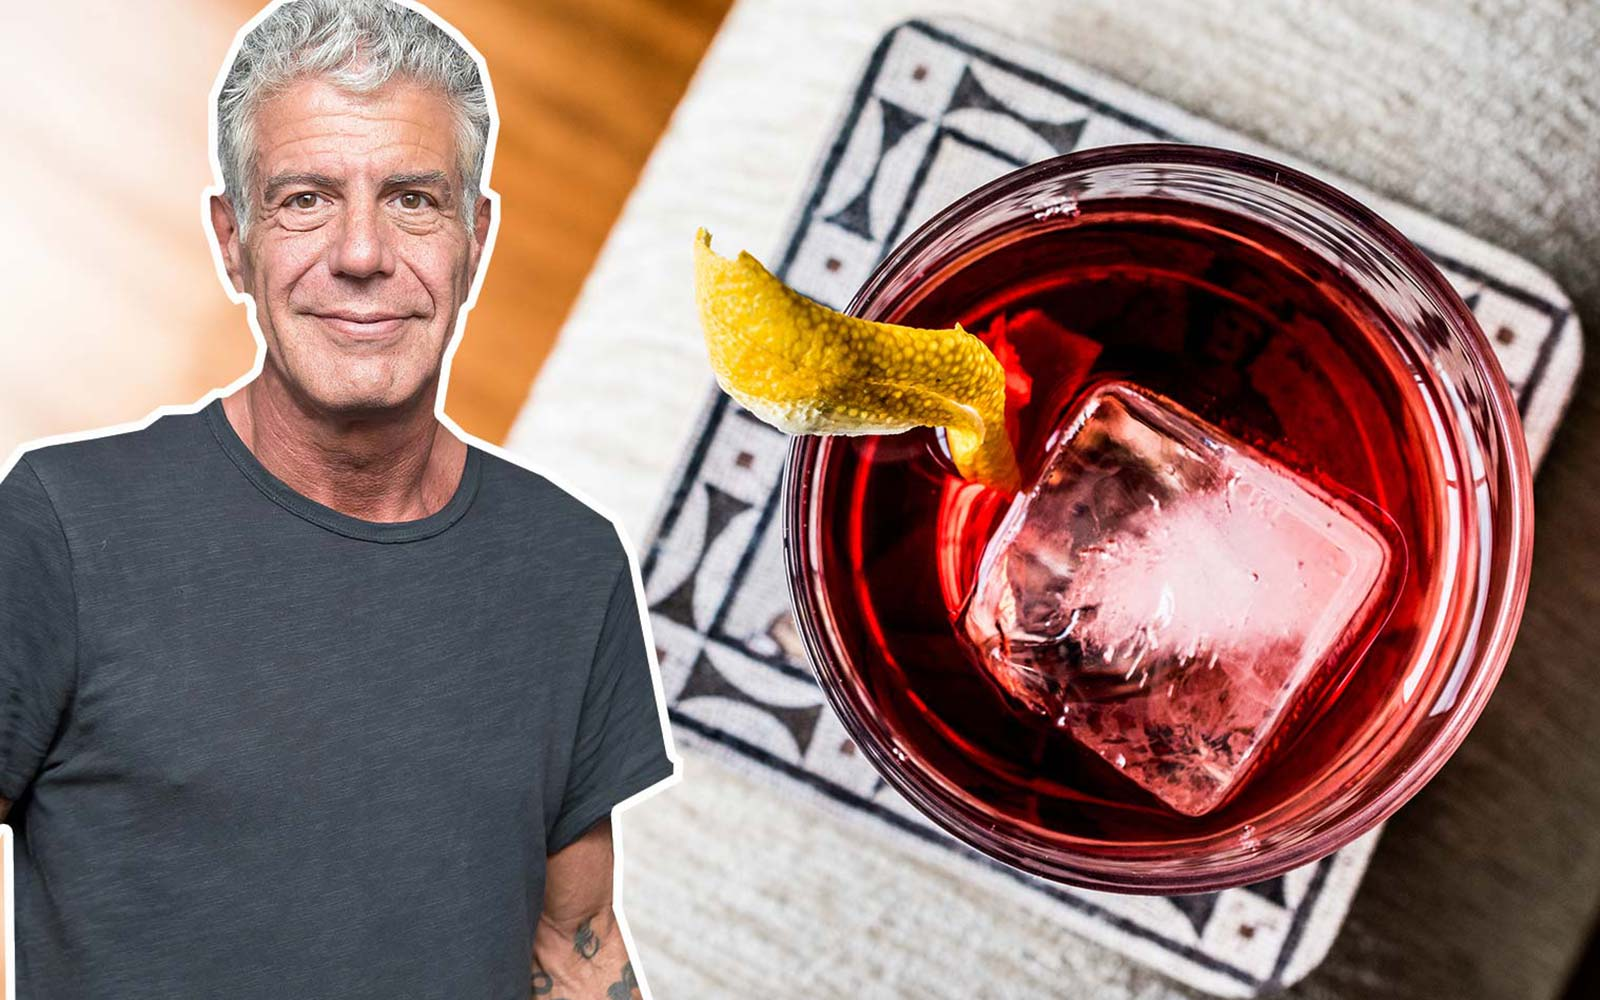 Is This Anthony Bourdain's Favorite Cocktail?